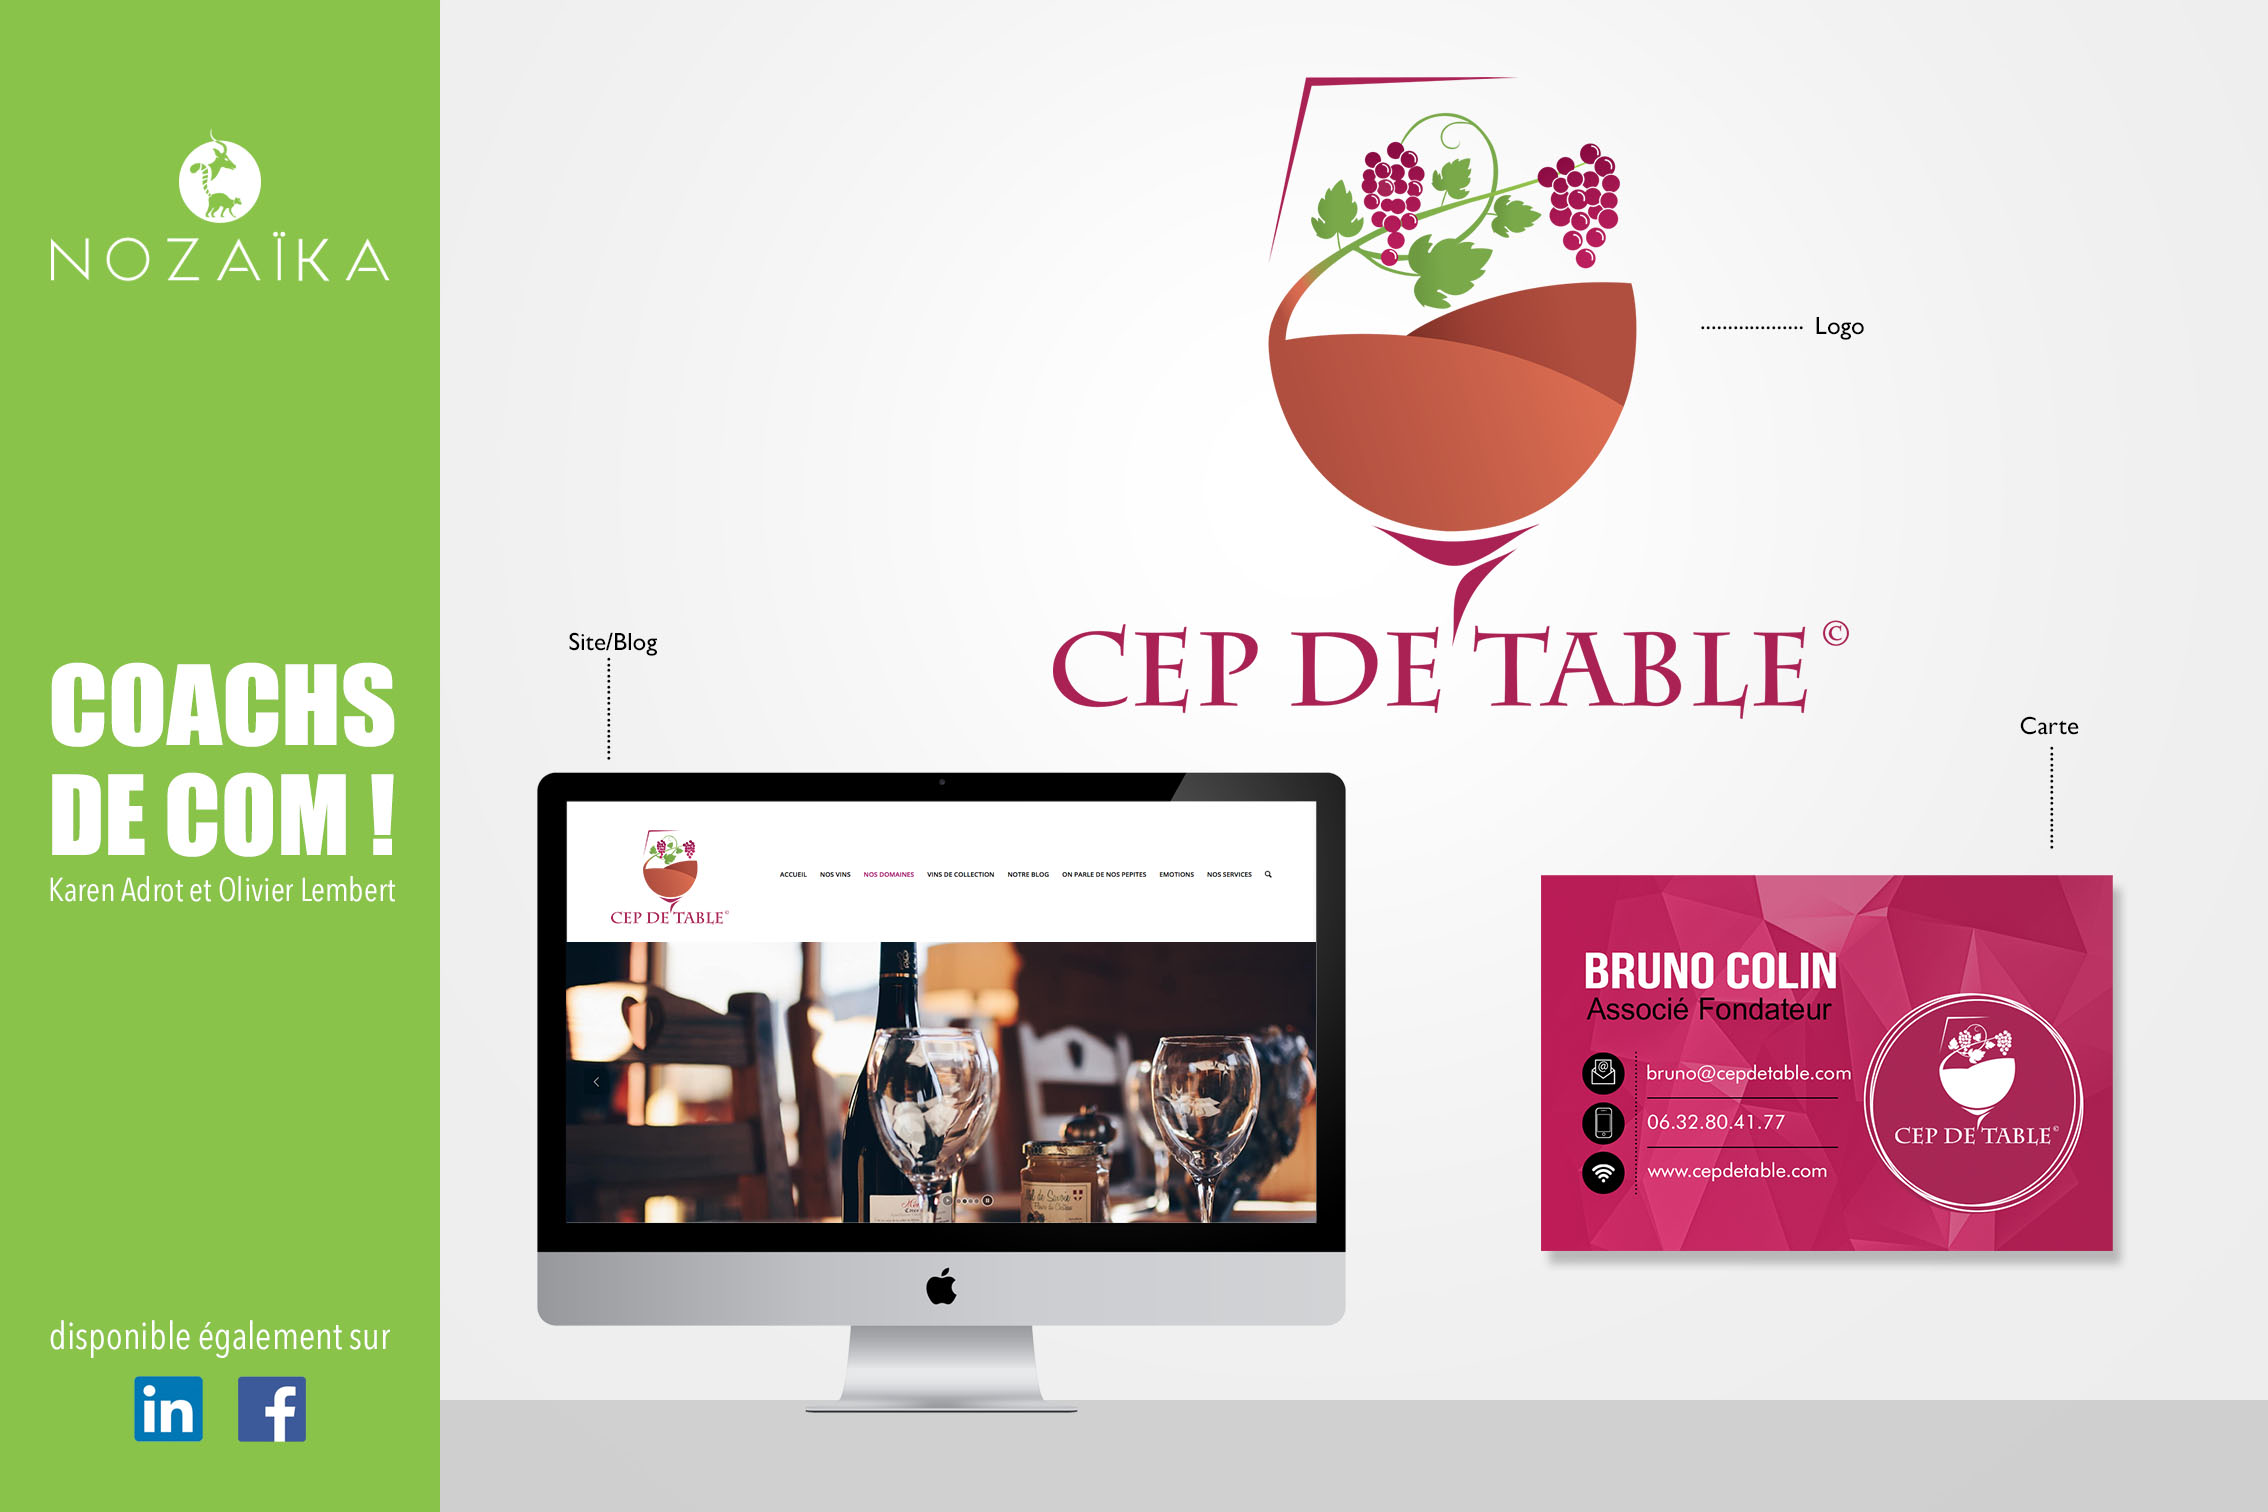 CEP DE TABLE